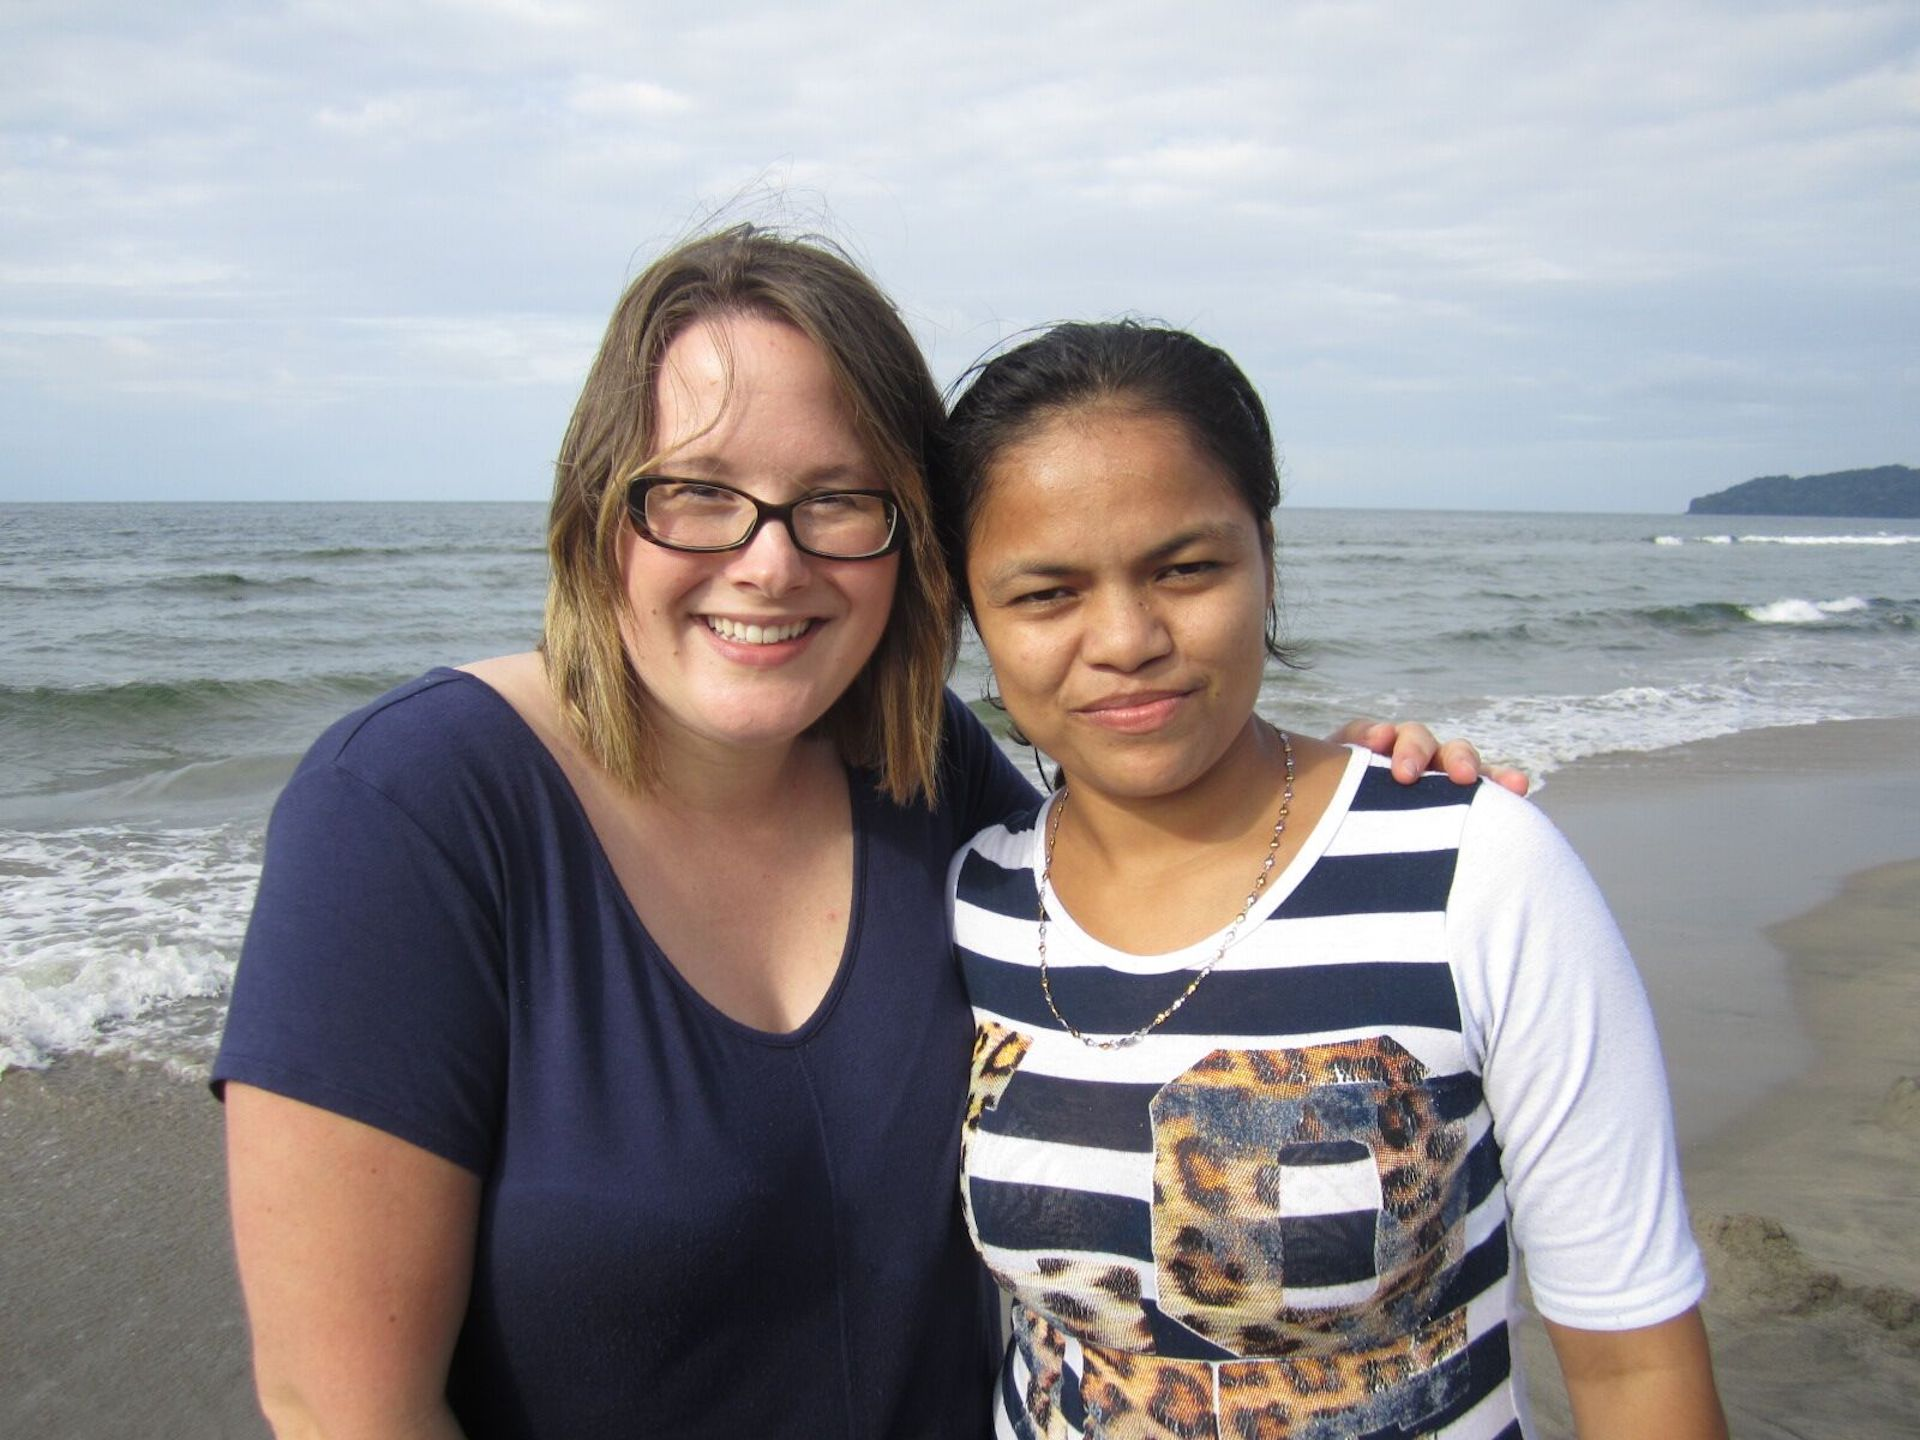 Two women stand together on a beach.